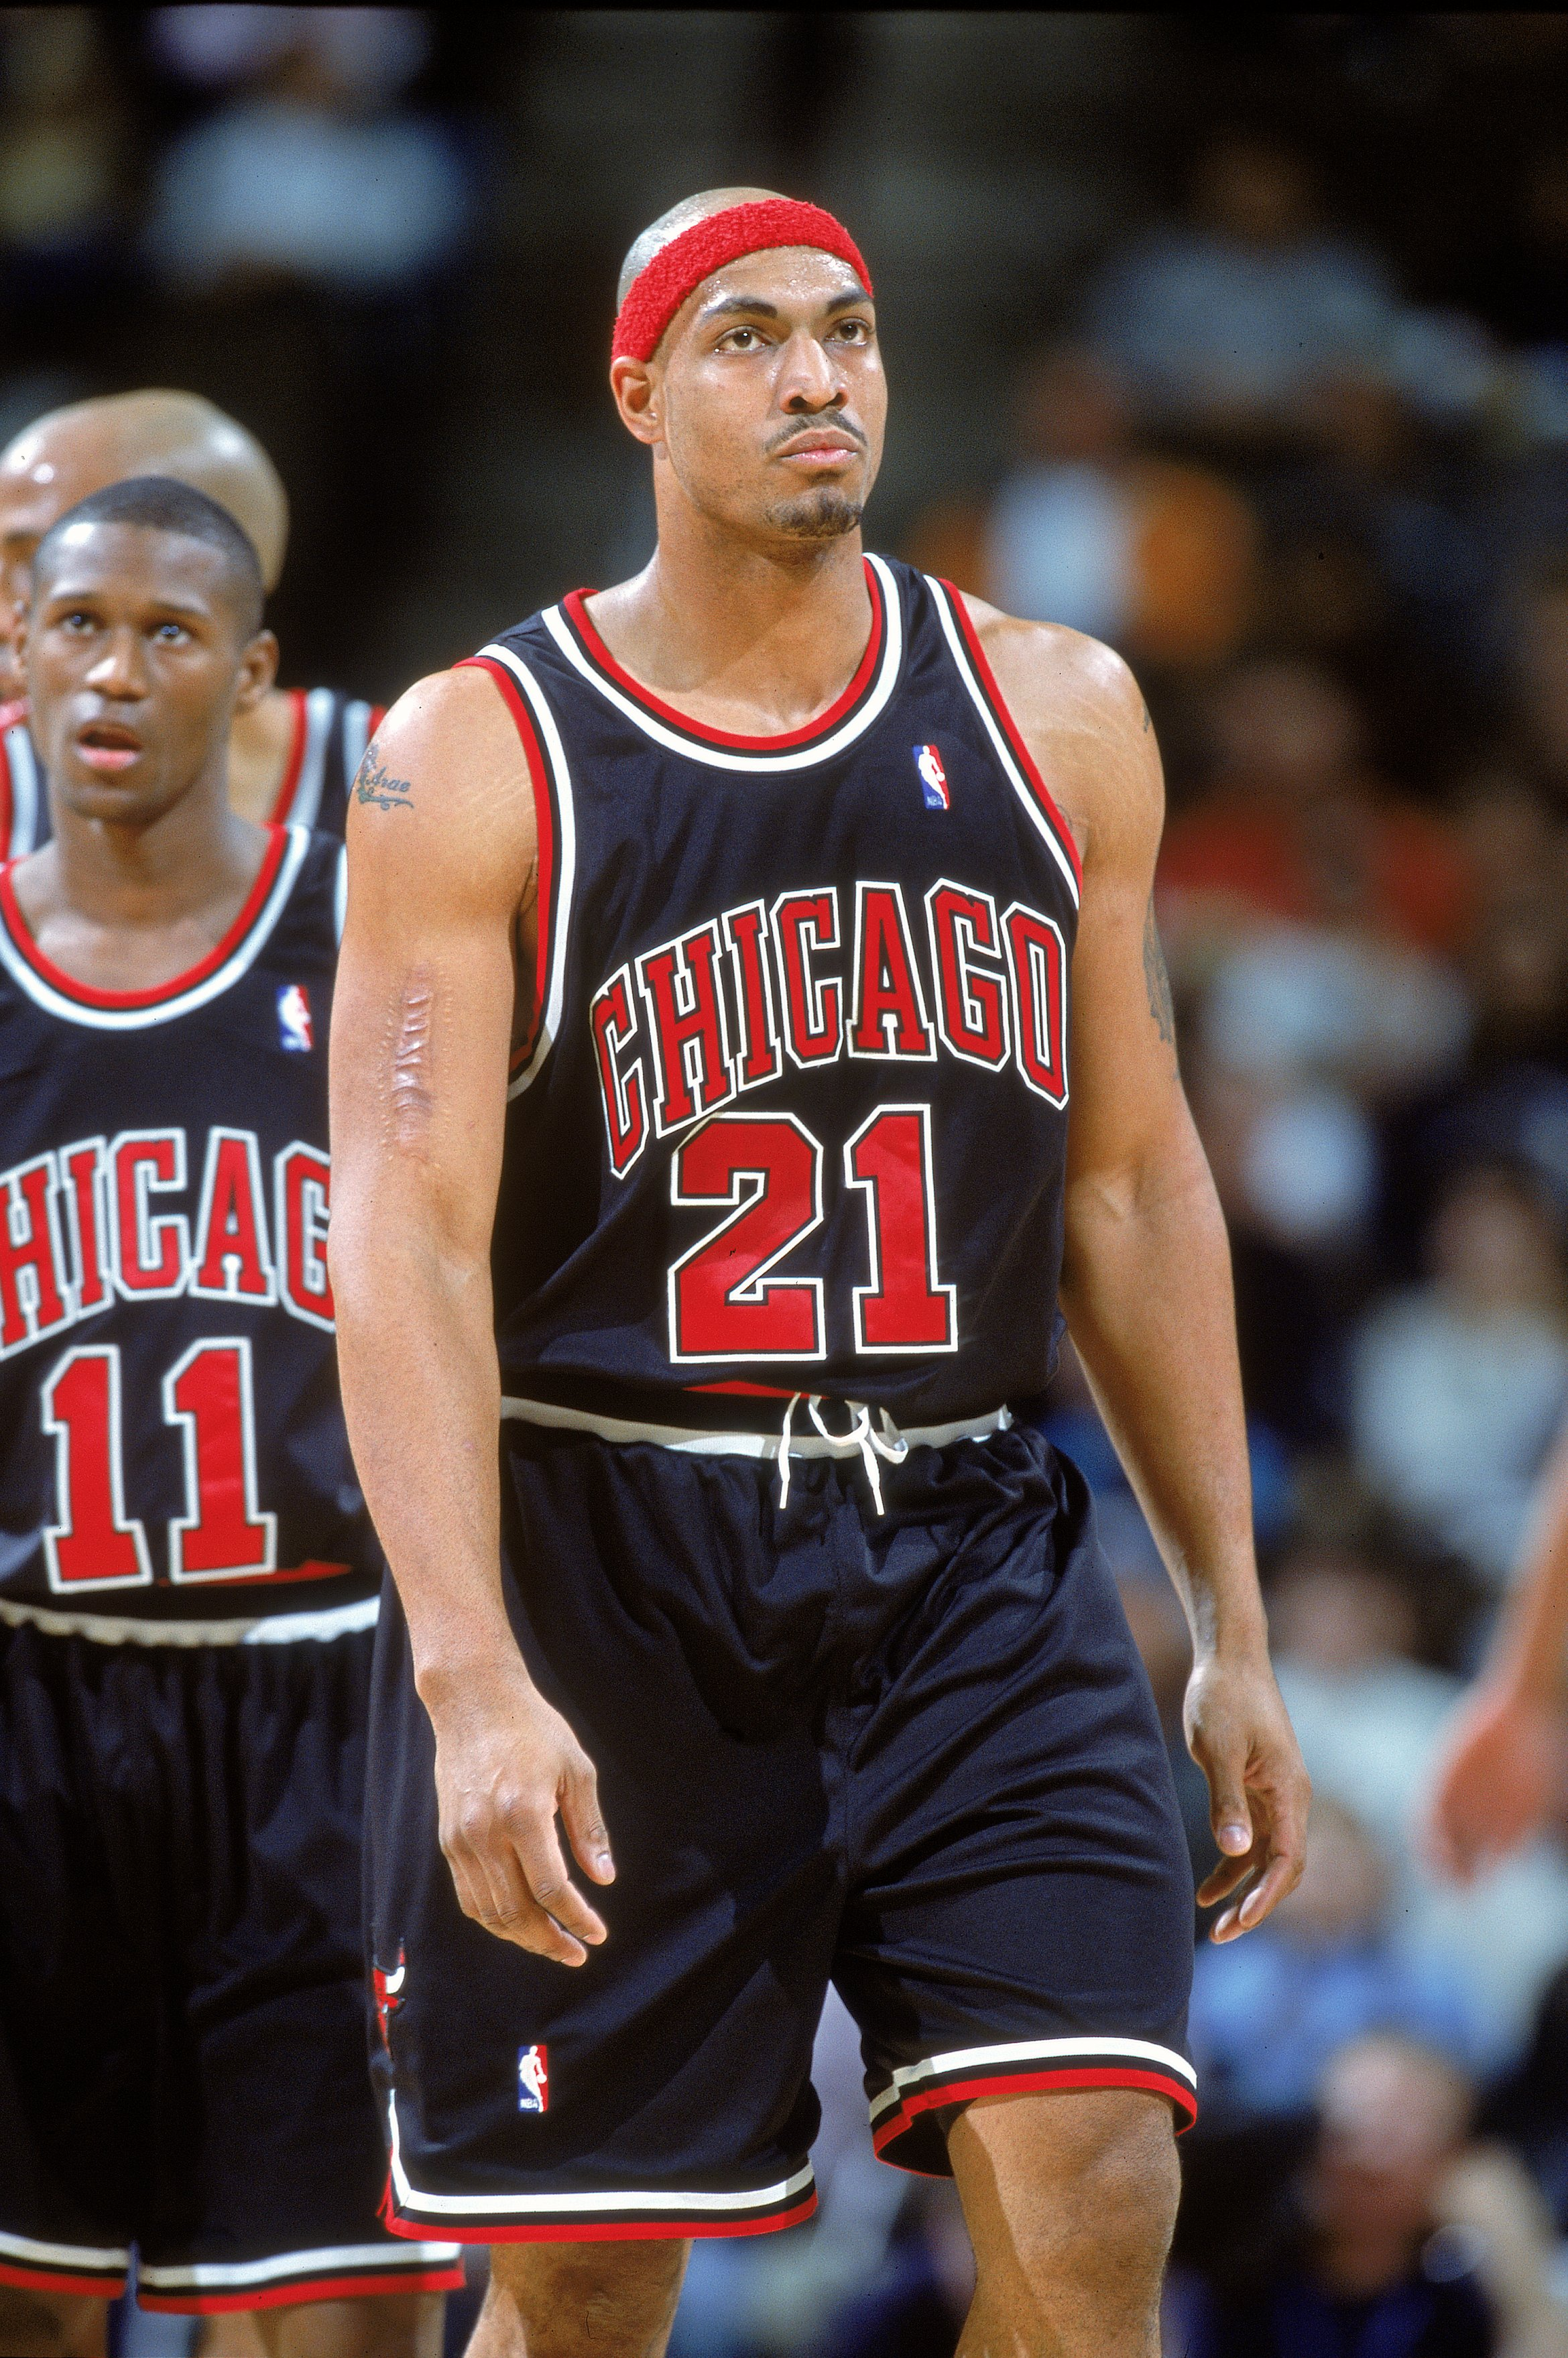 16 Nov 2000: Marcus Fizer #21 of the Chicago Bulls walks down the court during the game against the Denver Nuggets at the Pepsi Center in Denver, Colorado.  The Nuggets defeated the Bulls 89-85.   NOTE TO USER: It is expressly understood that the only rig